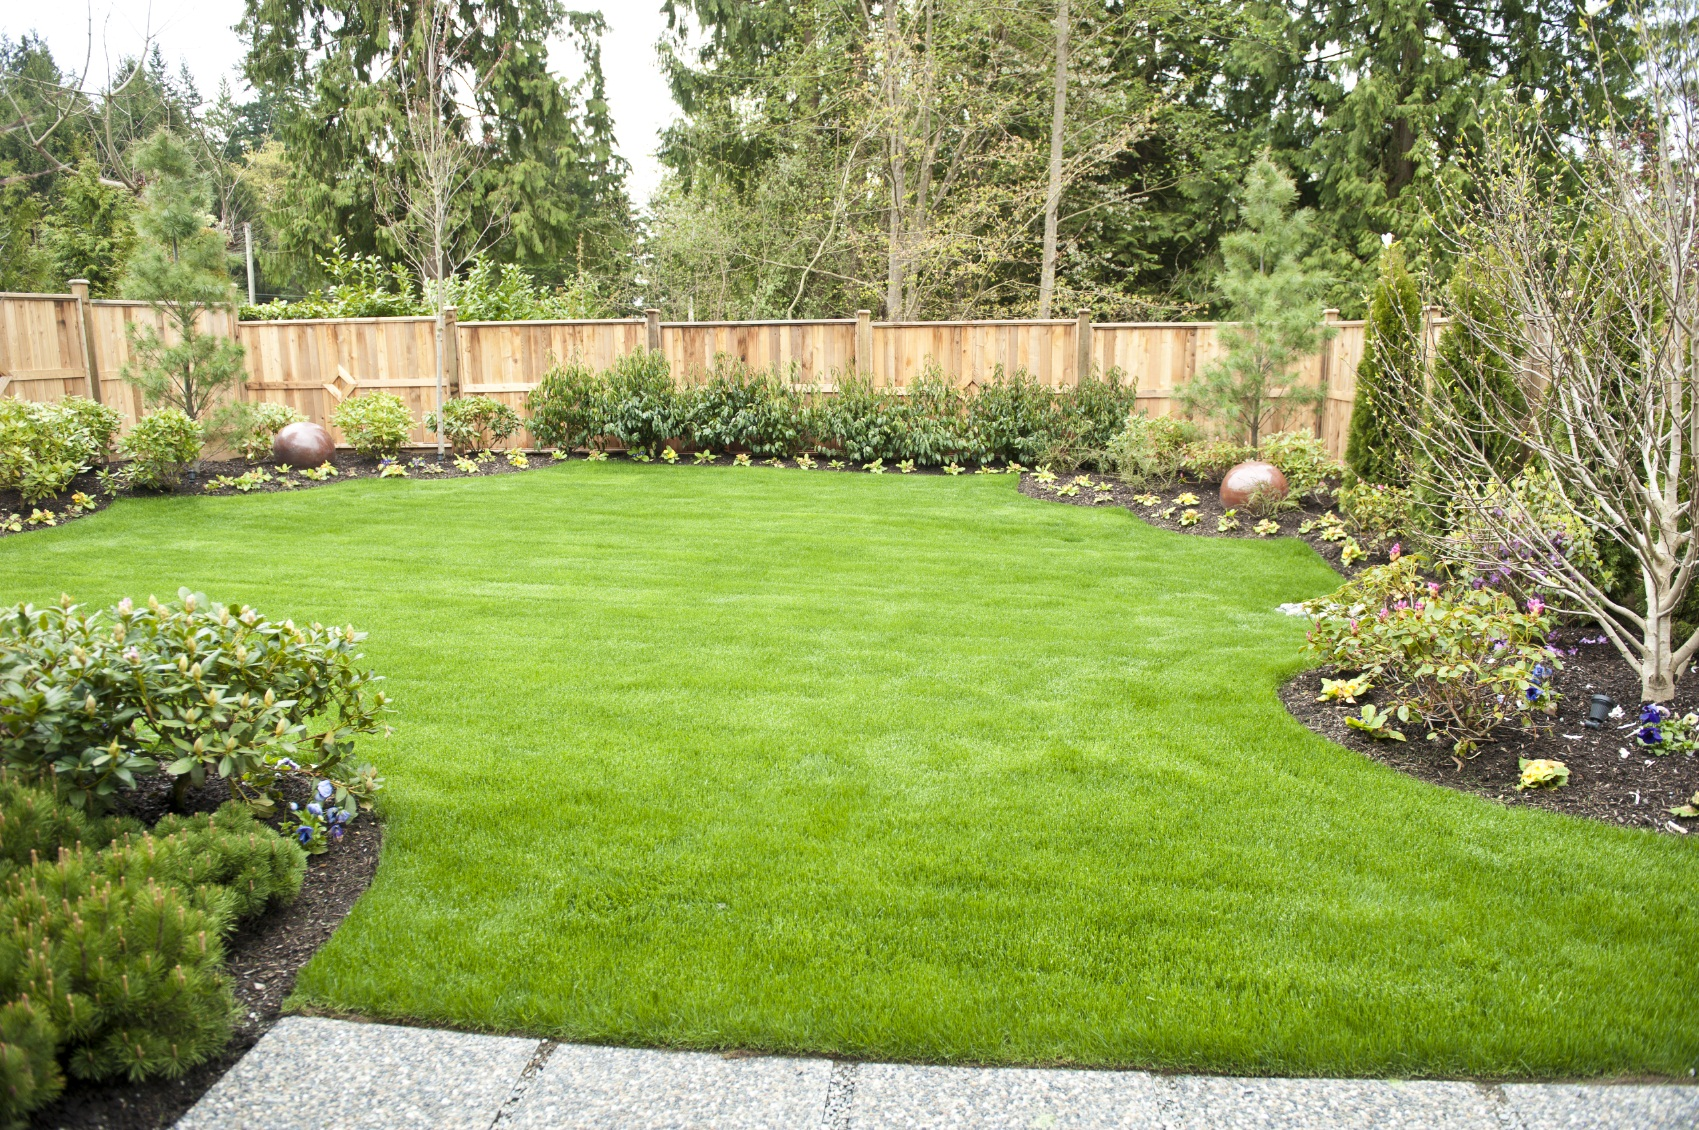 Backyard Landscaping Tips | Metamorphosis Landscape Design on Simple Backyard Landscaping Ideas id=36306